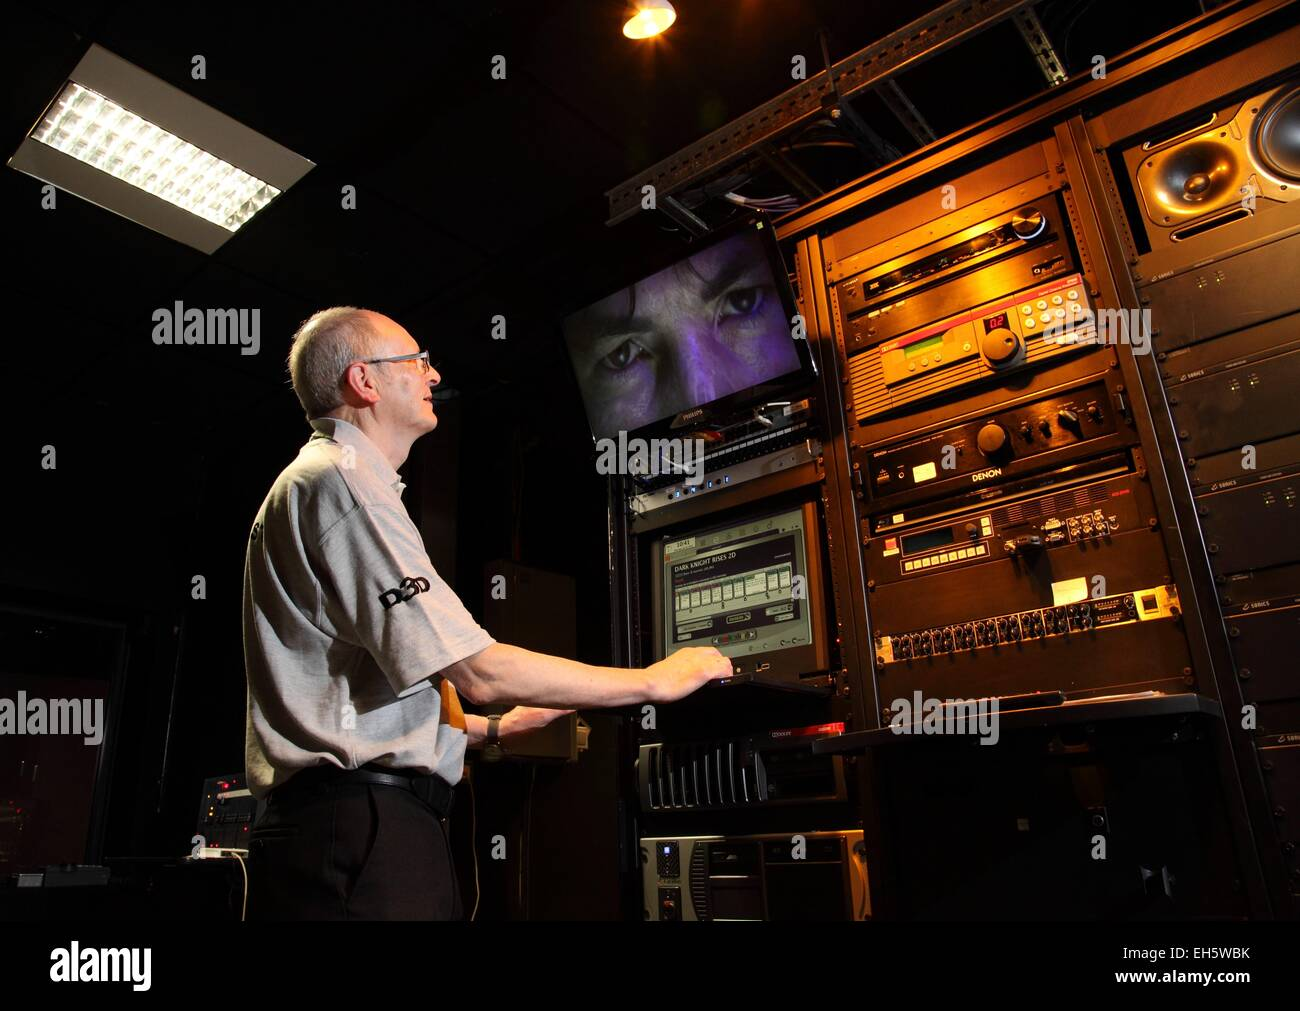 A man at the controls of a cinema projection room Stock Photo